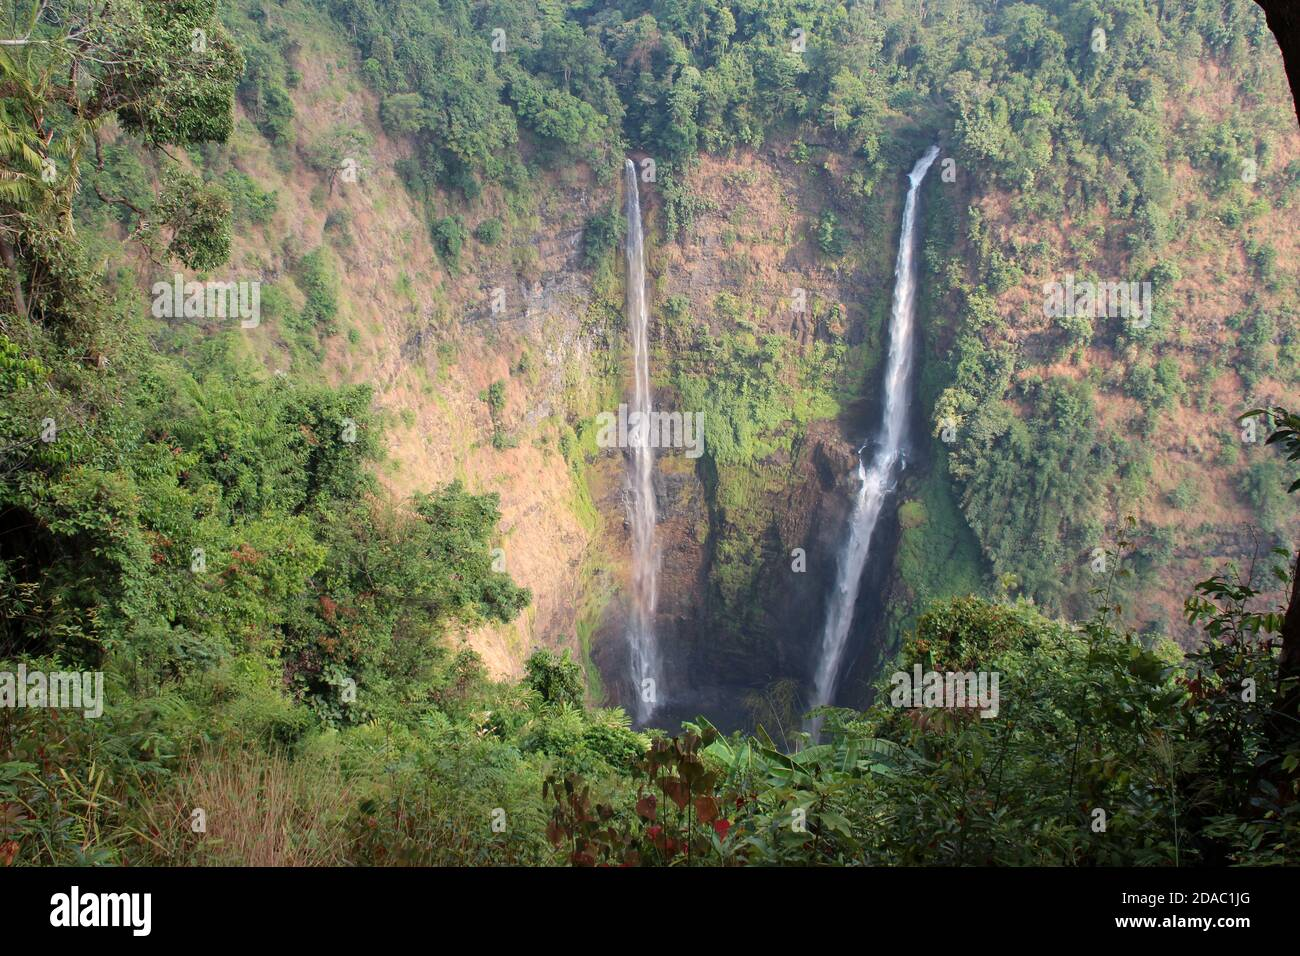 tad fane waterfalls at bolovens in laos Stock Photo